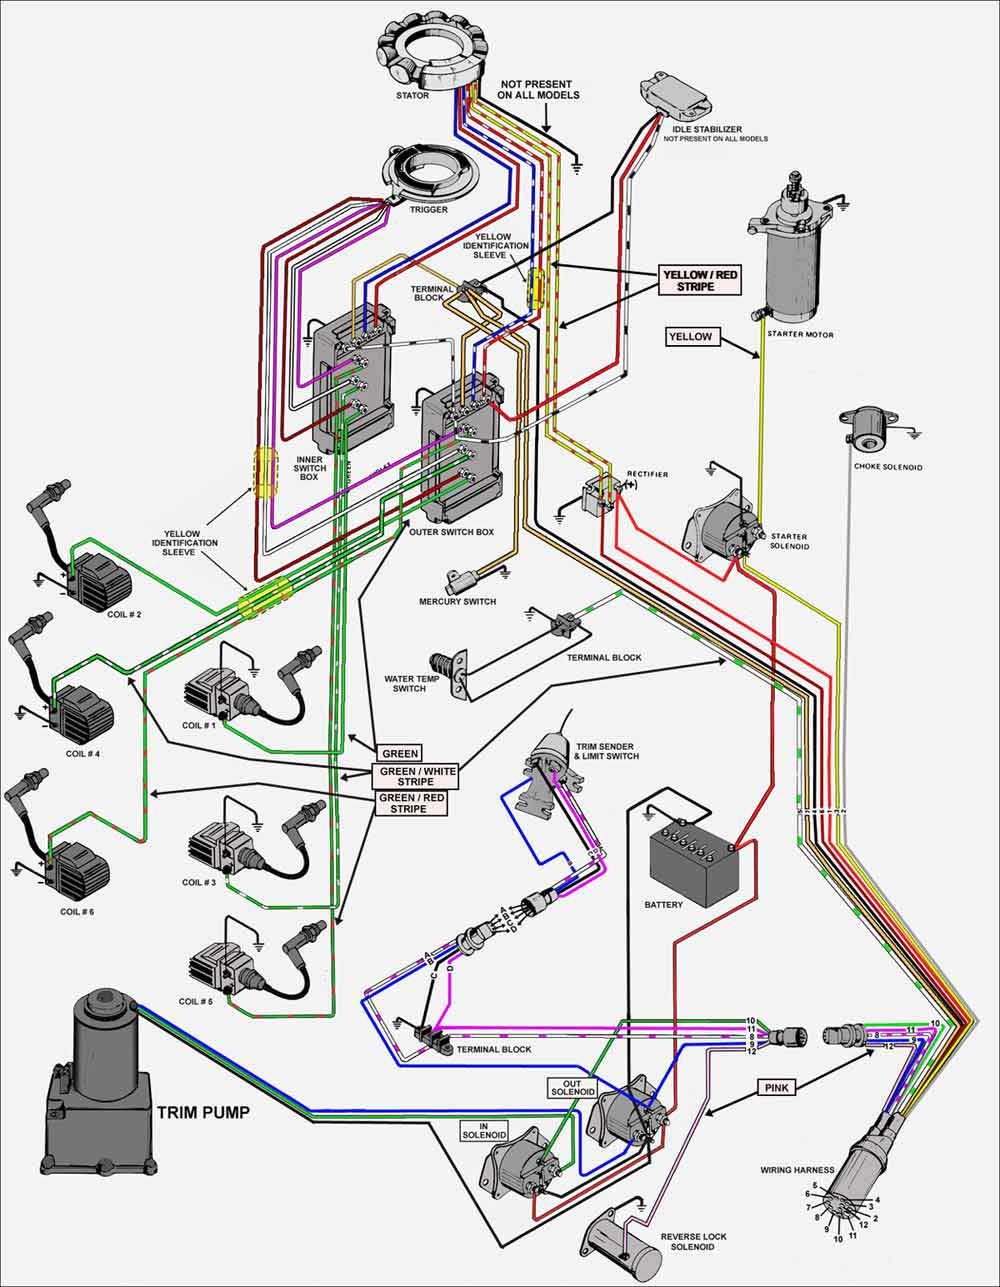 diagram furthermore mercury outboard key switch wiring diagram rh linxglobal co Mercury Outboard Tach Wiring Diagram Mercury 115 Outboard Engine Harness